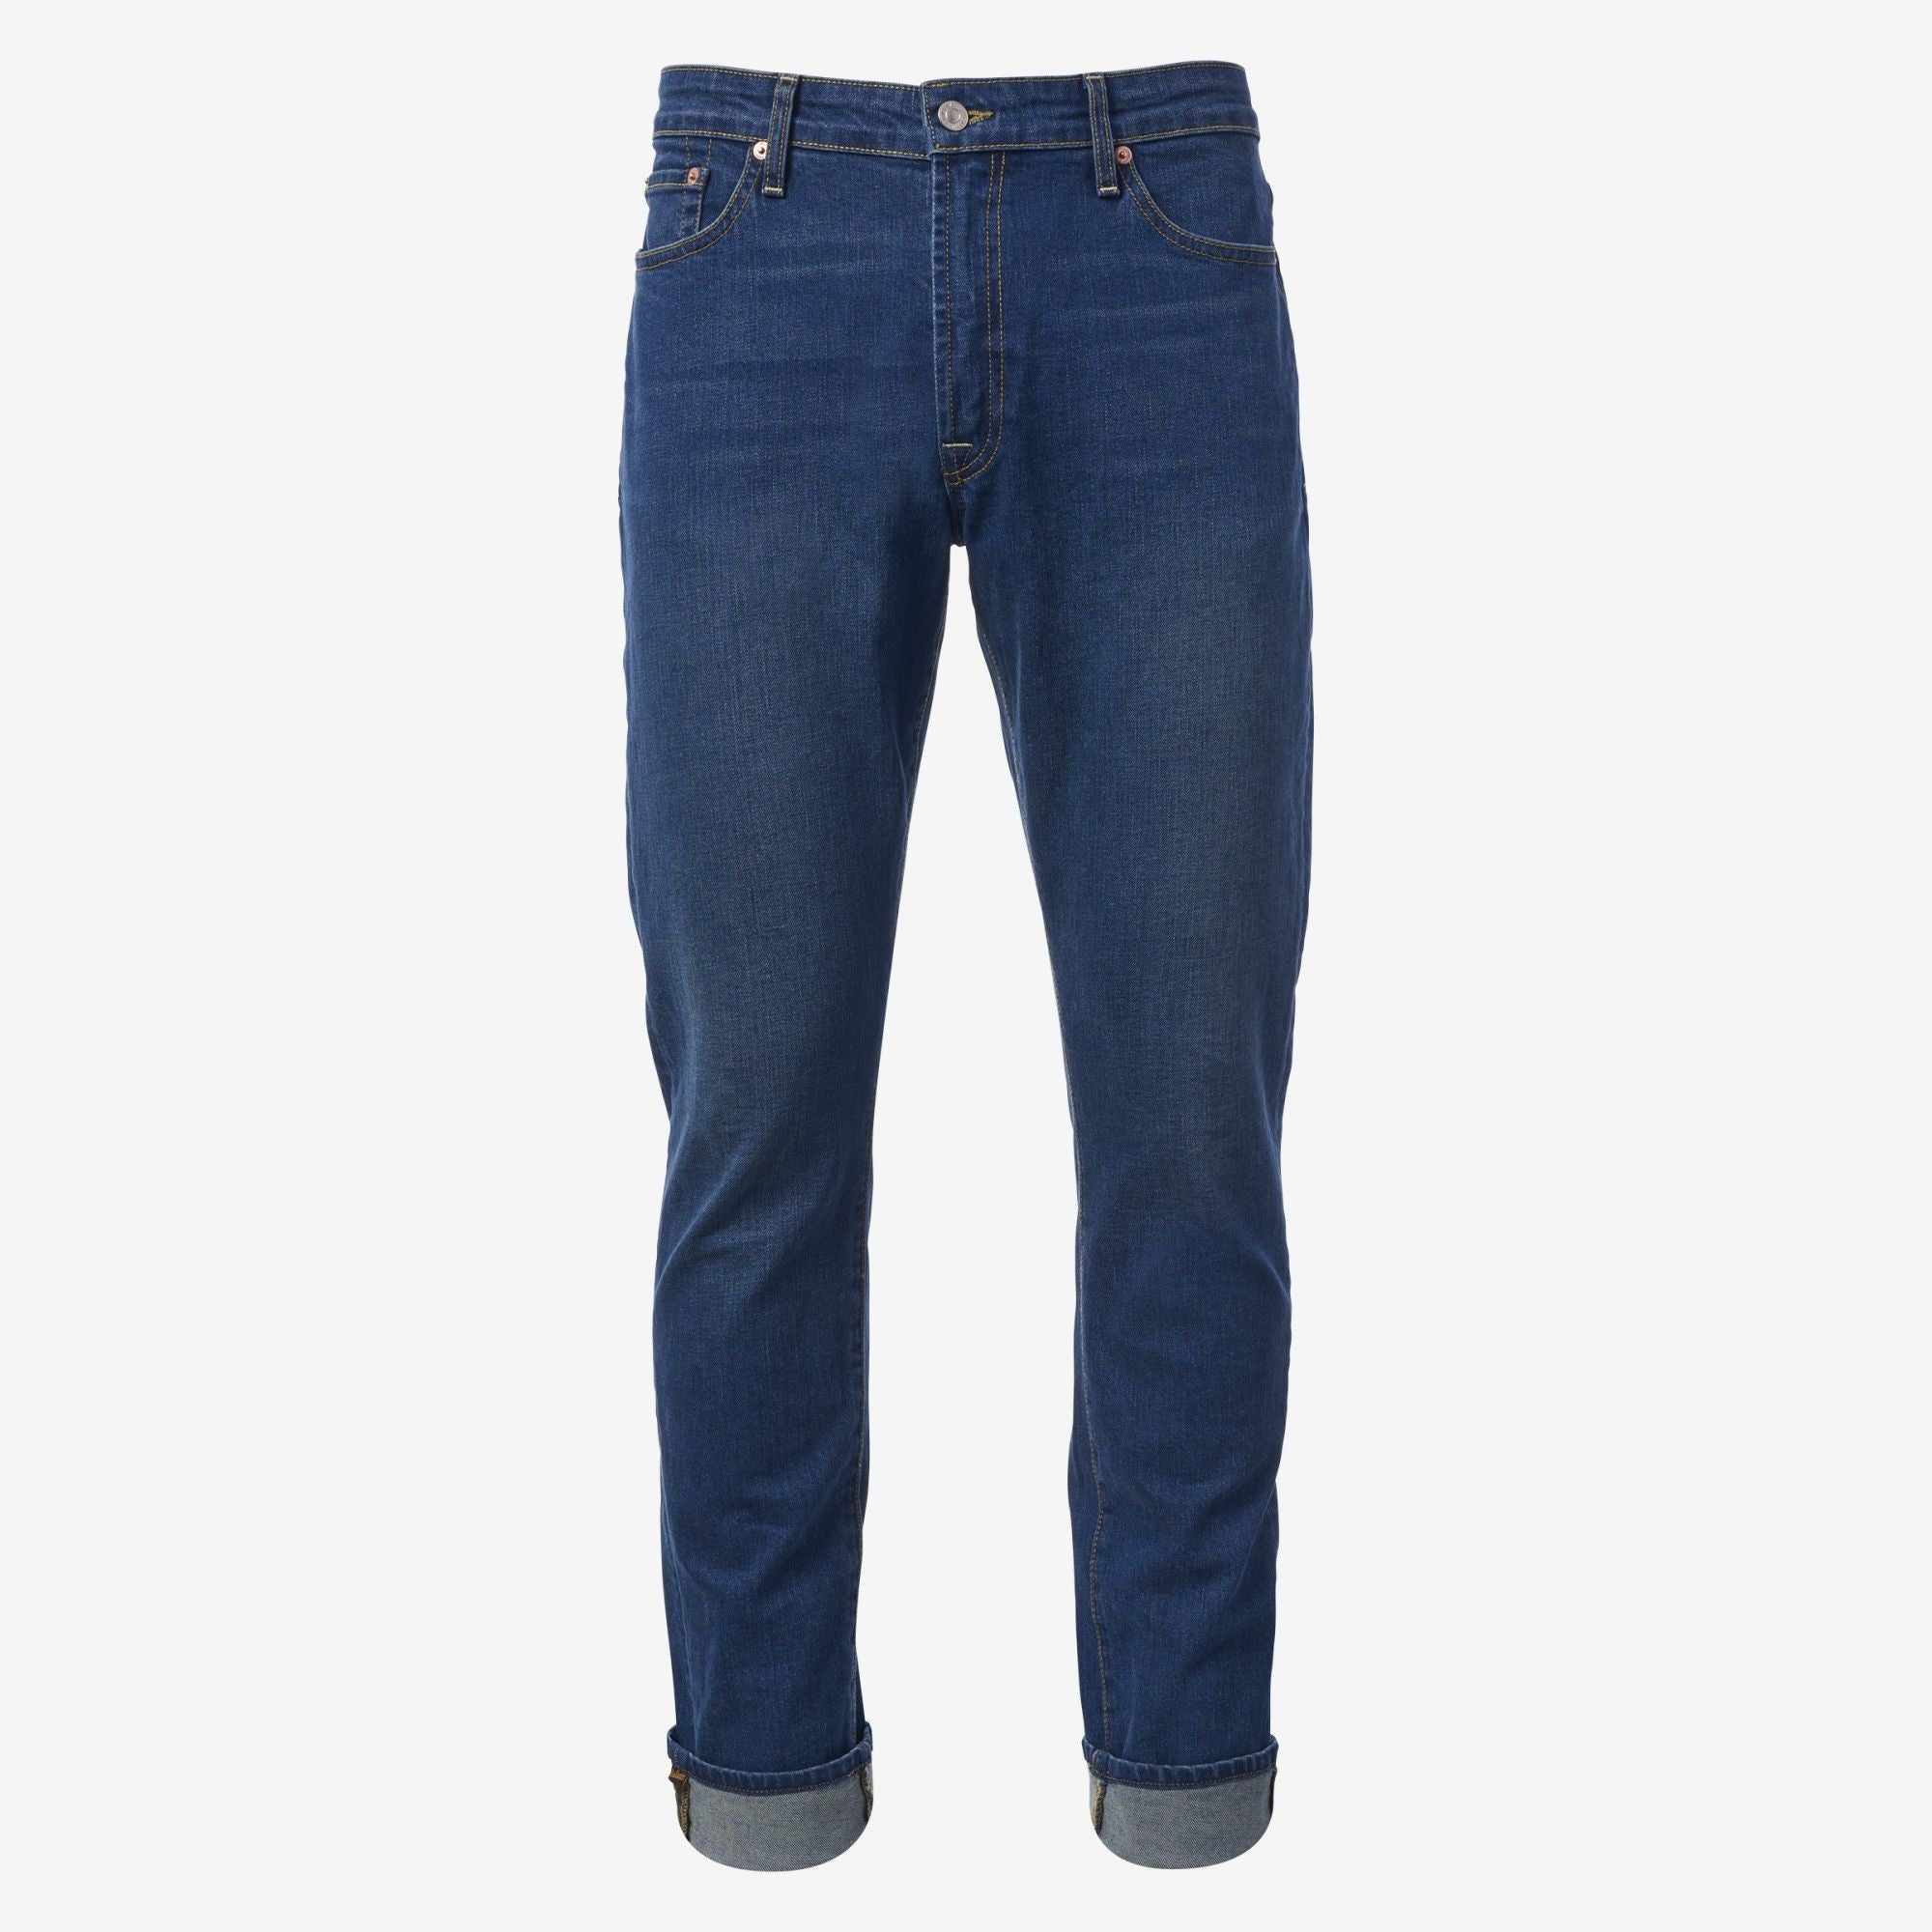 Walker Slim Straight Leg Jean in Medium Rinse by Civilianaire